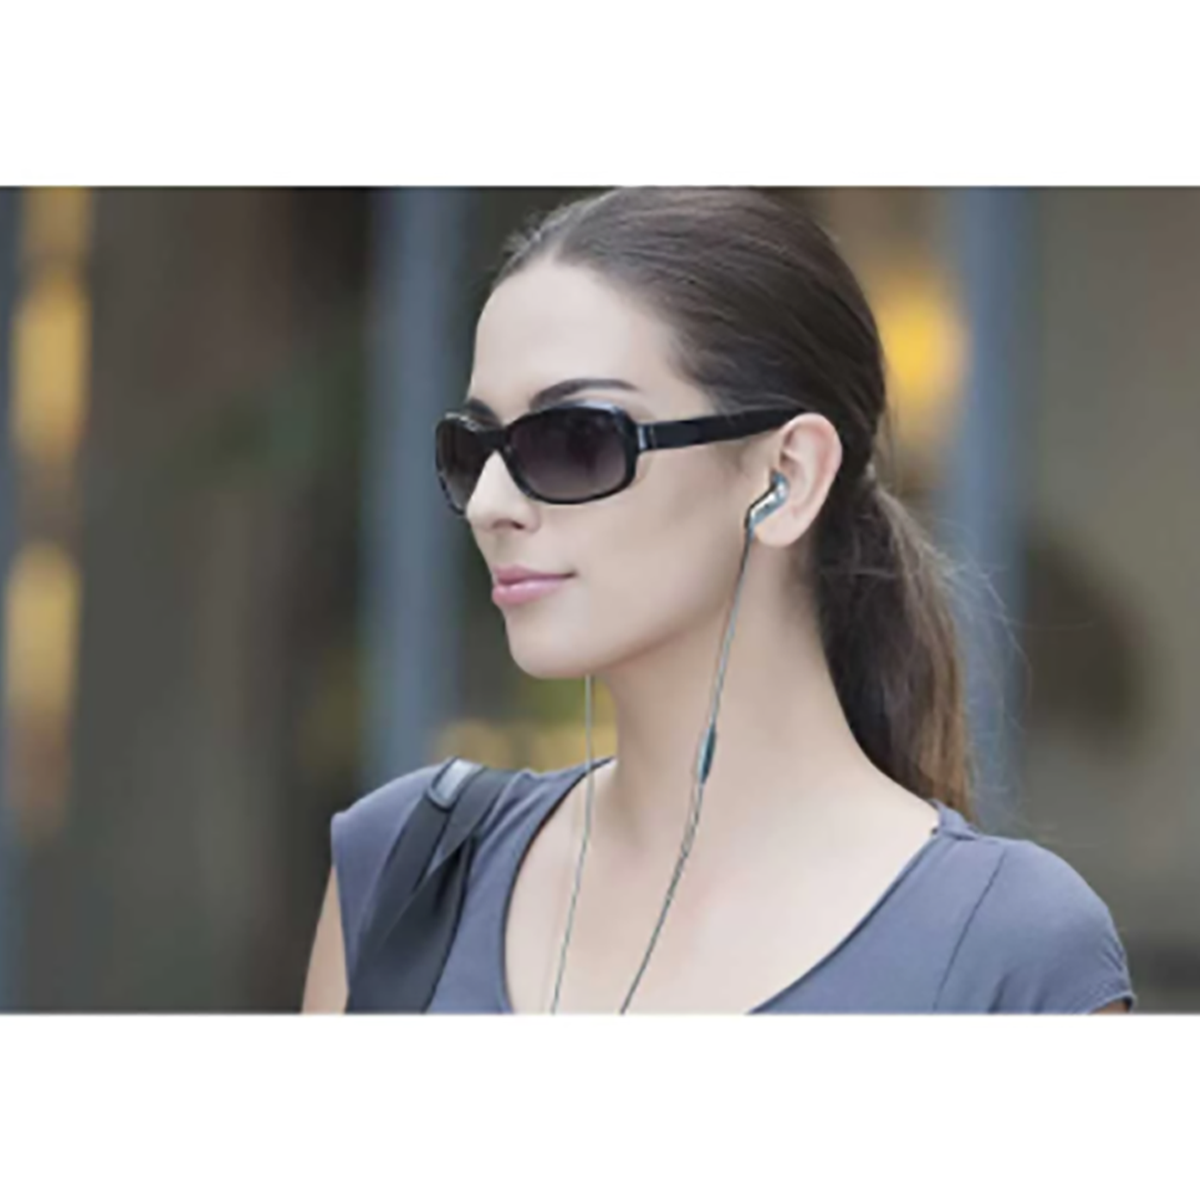 """Brand - Edifier, Model - Edifier P186, Type - In-ear Earphone, Connectivity - Wired, Frequency Response - 20Hz - 20KHz, Sensitivity - 101dB, Impedance (ohm) - 32ohm, Microphone - Yes, Plug Type - 3.5mm Jack, Color - Khaki, Feature - Classic ear bud design with HiFi sound, Pauses playback and answers calls, Inline omnidirectional microphone, Others - Connector: 3.5mm, Warranty - 1 Year, Country of Origin - China, Made in/ Assemble - China """"Keyword"""" """"edifier p186 wired in ear khaki earphone review"""" """"edifier p186 wired in ear khaki earphone price"""" """"edifier p186 wired in ear khaki earphone settings"""" """"edifier p186 wired in ear khaki earphone replacement"""""""